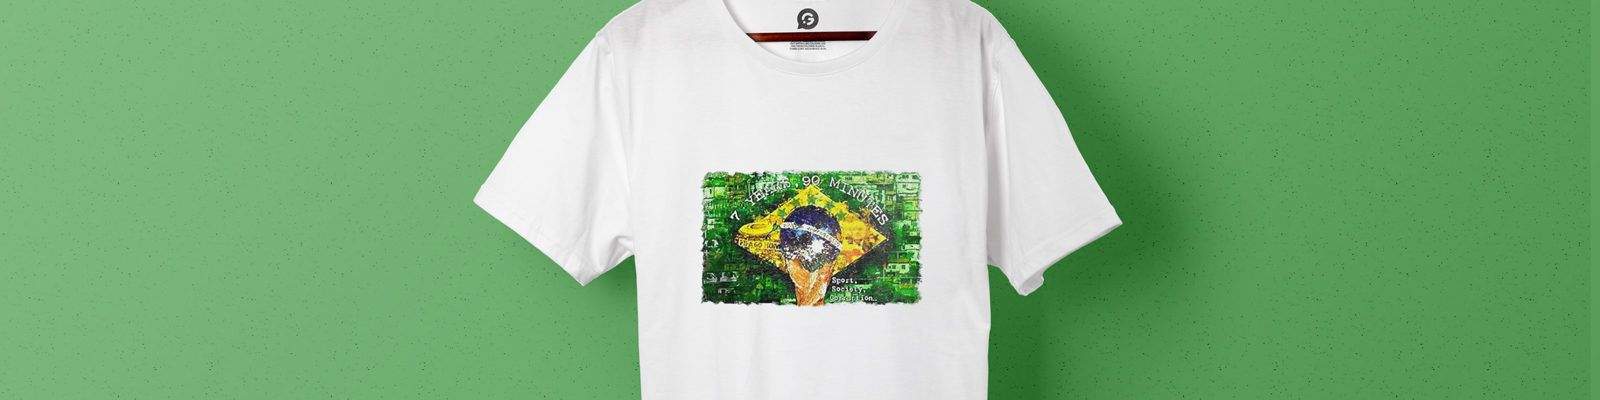 7 Years, 90 minutes Use Printed Garments to Promote Their Documentary About the 2014 World Cup in Brazil - Header Image